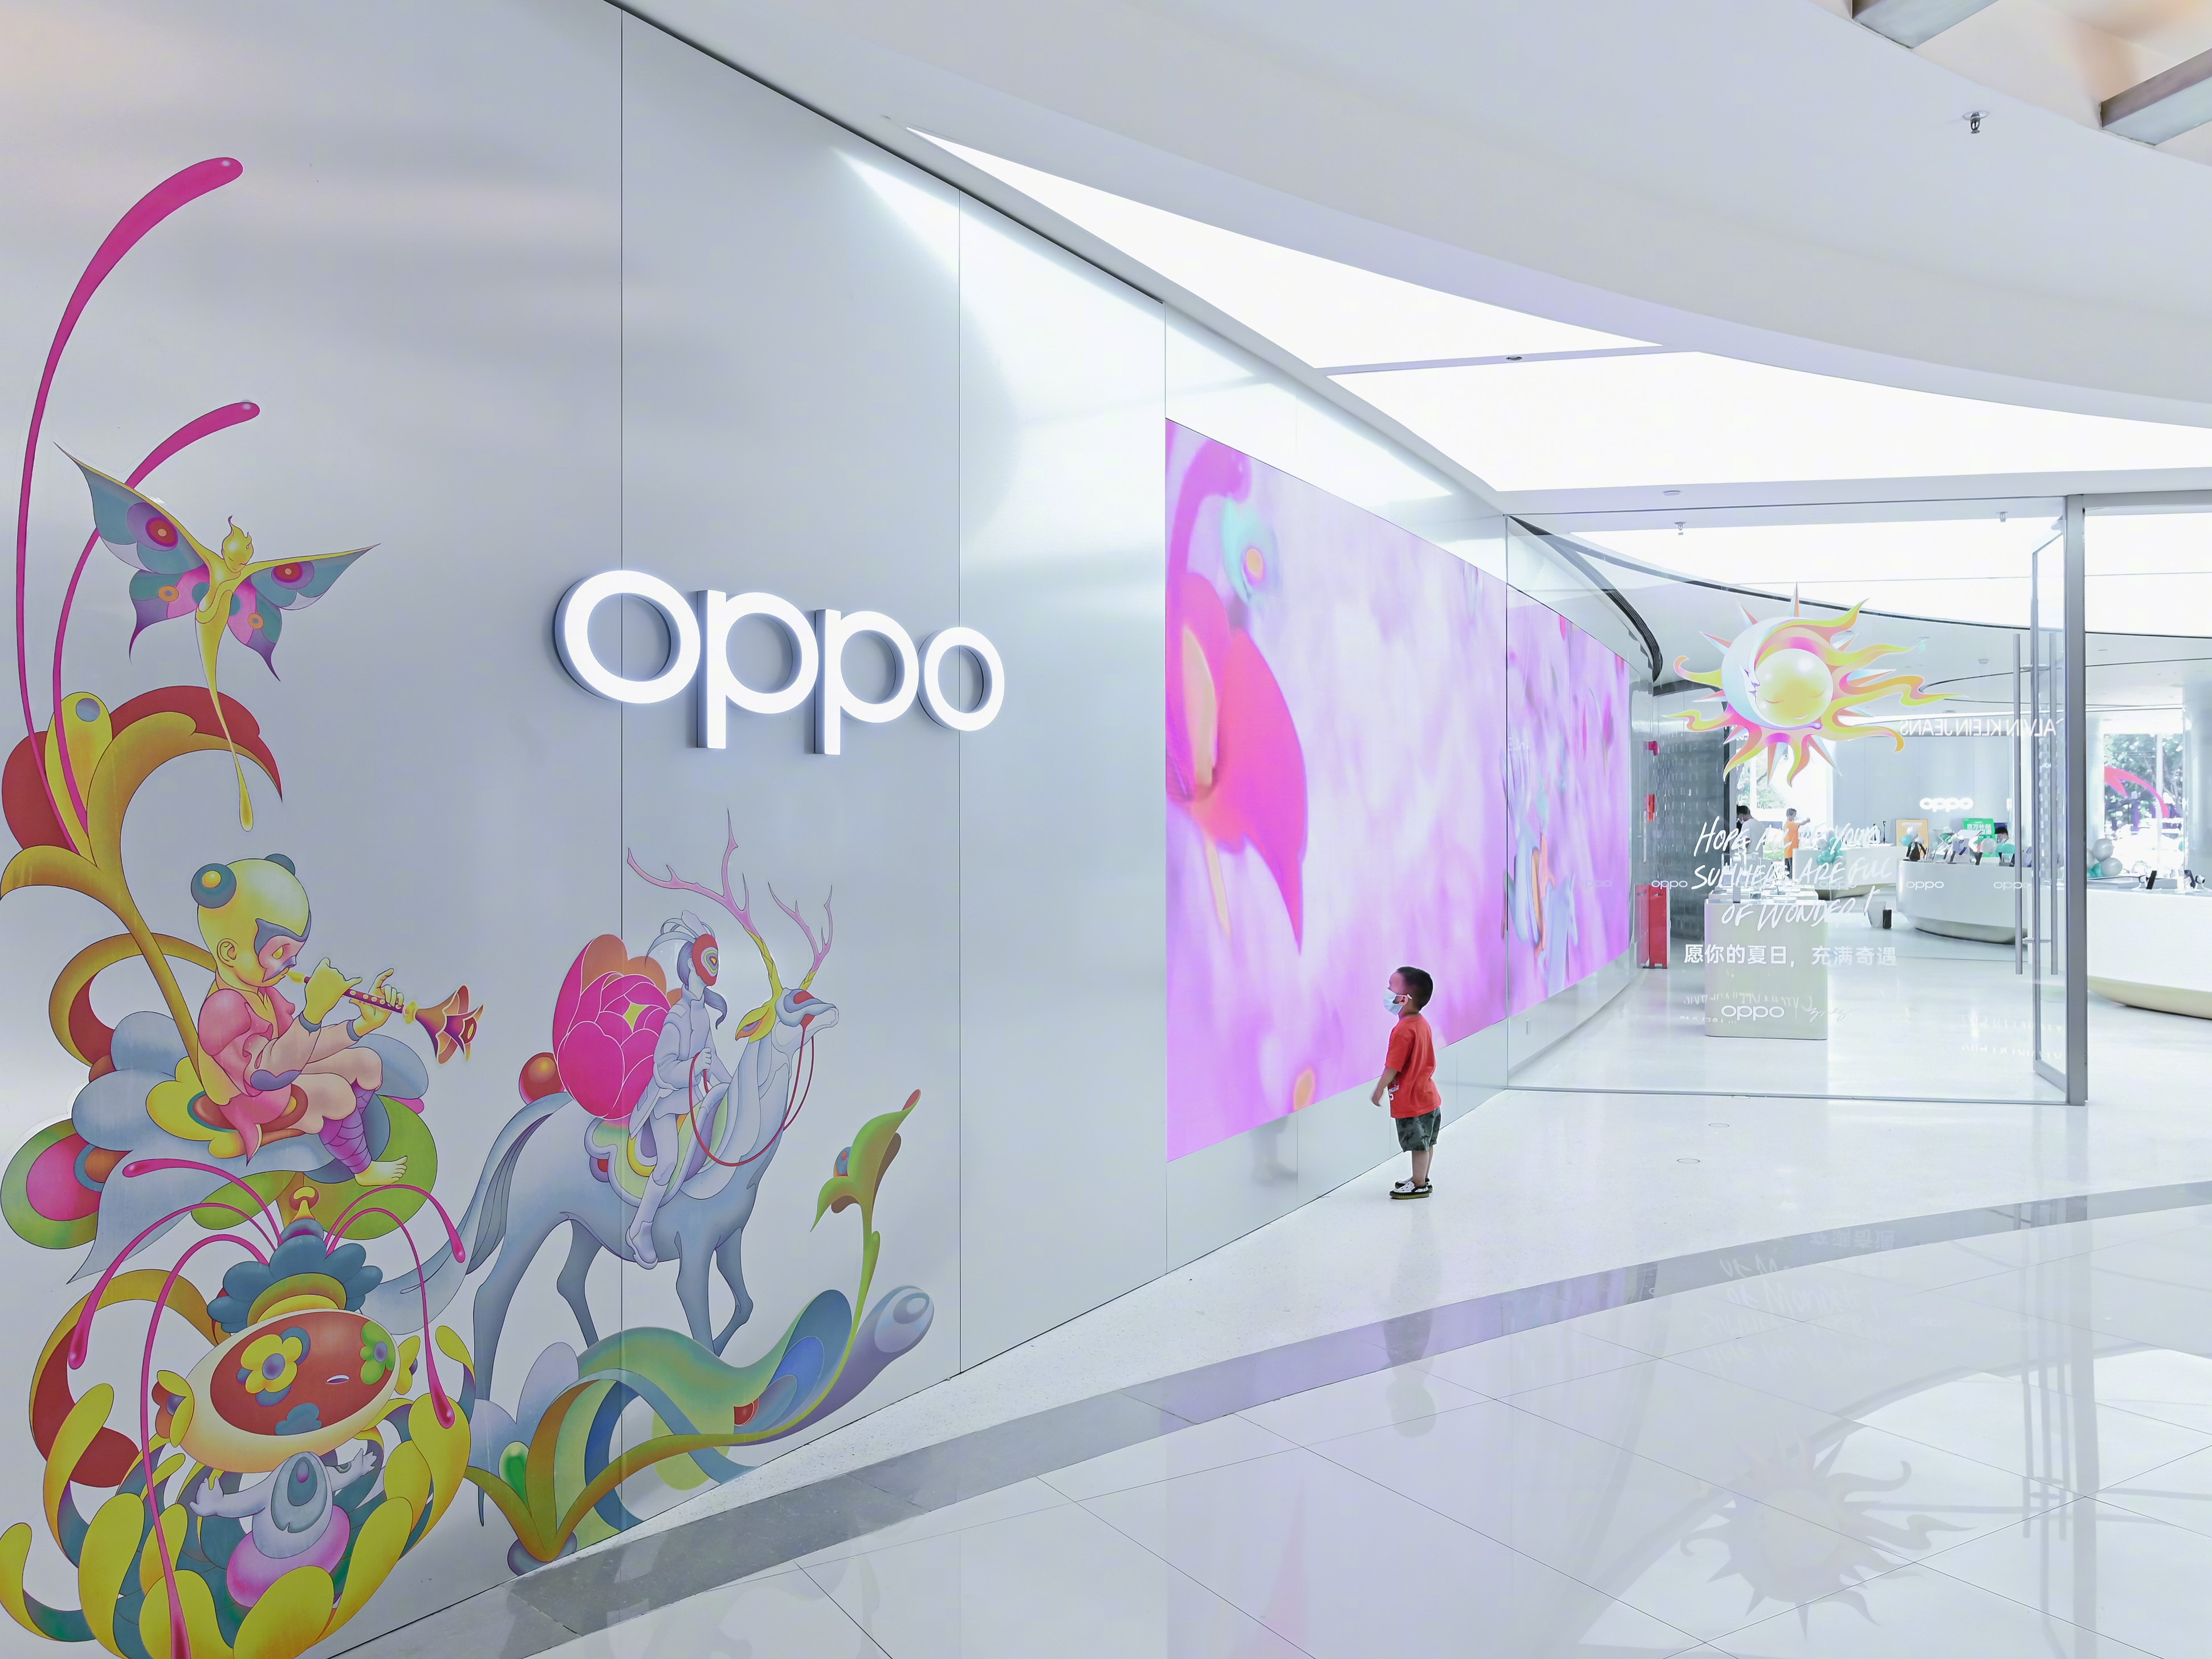 OPPO and Midea to Co-create Smart Home and IoT Ecosystem